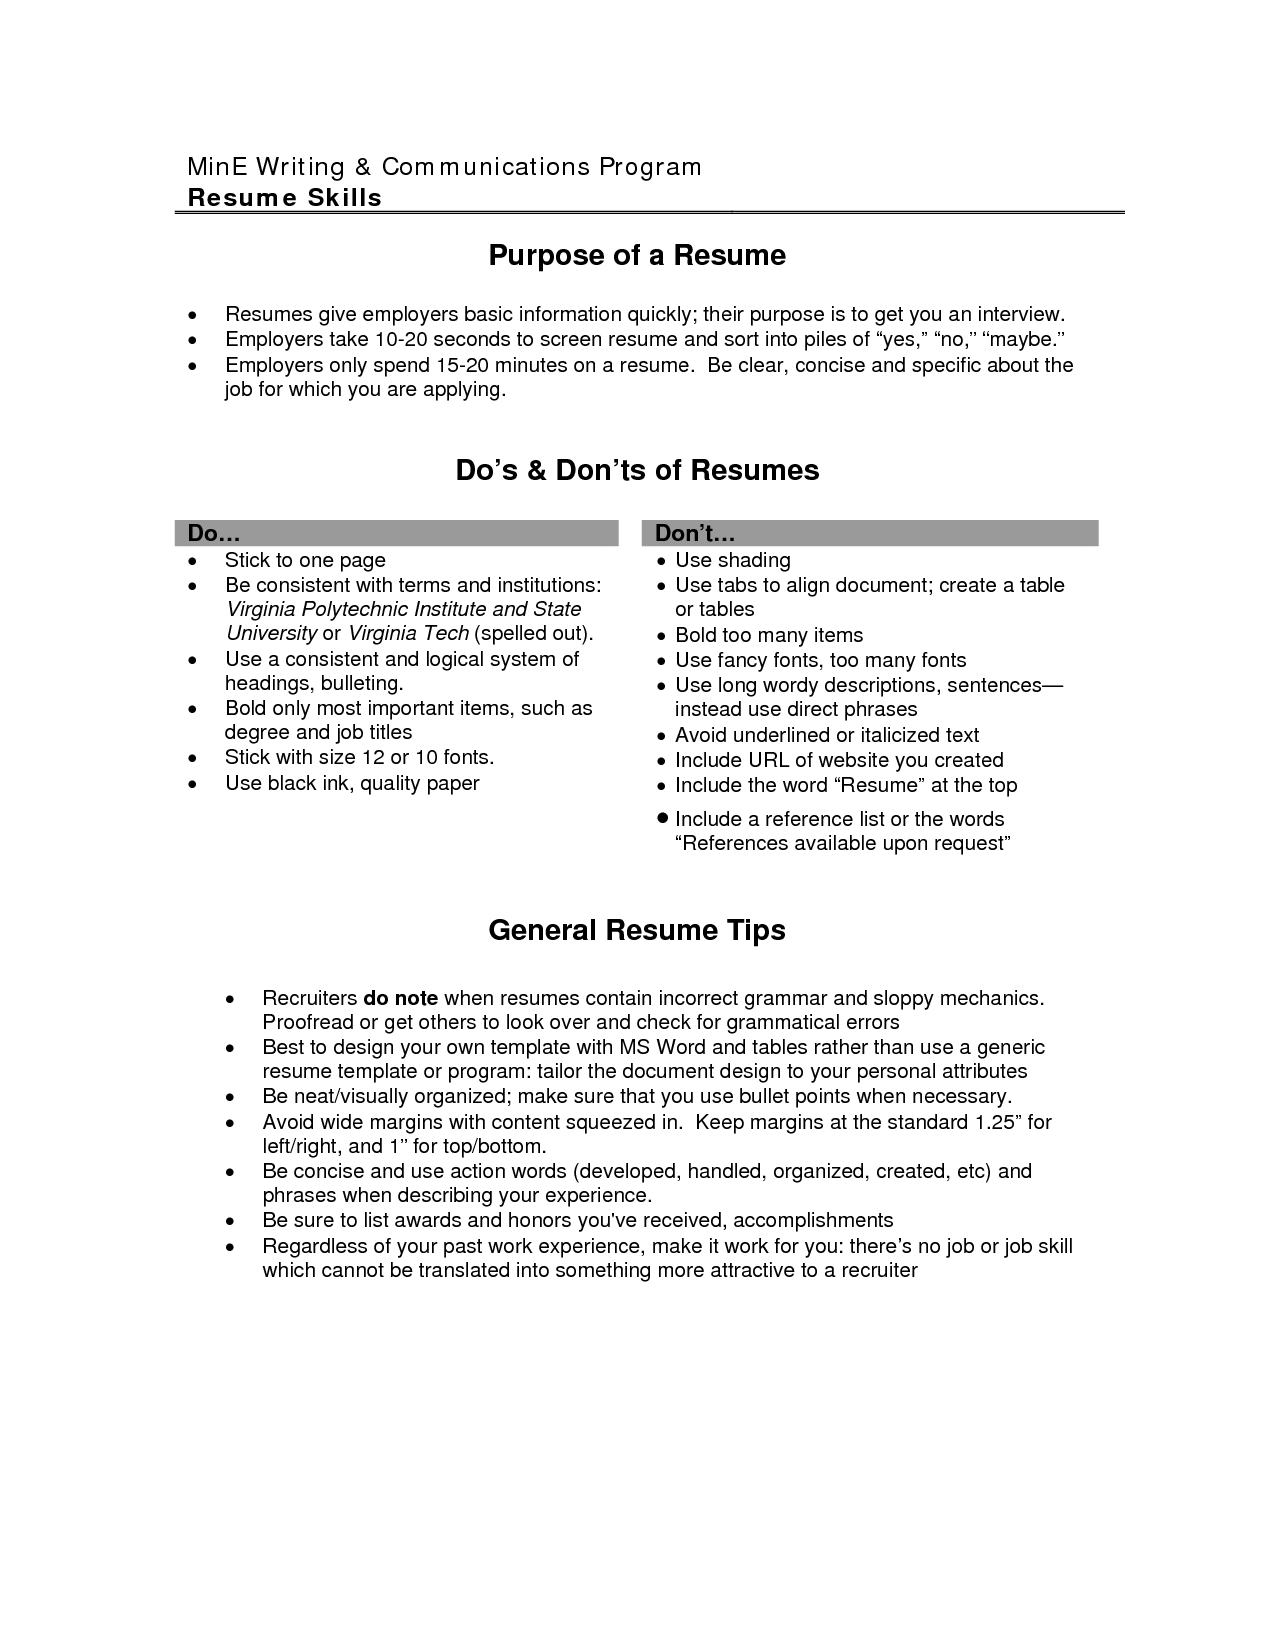 Good Objectives For A Resume - essayscope.Com